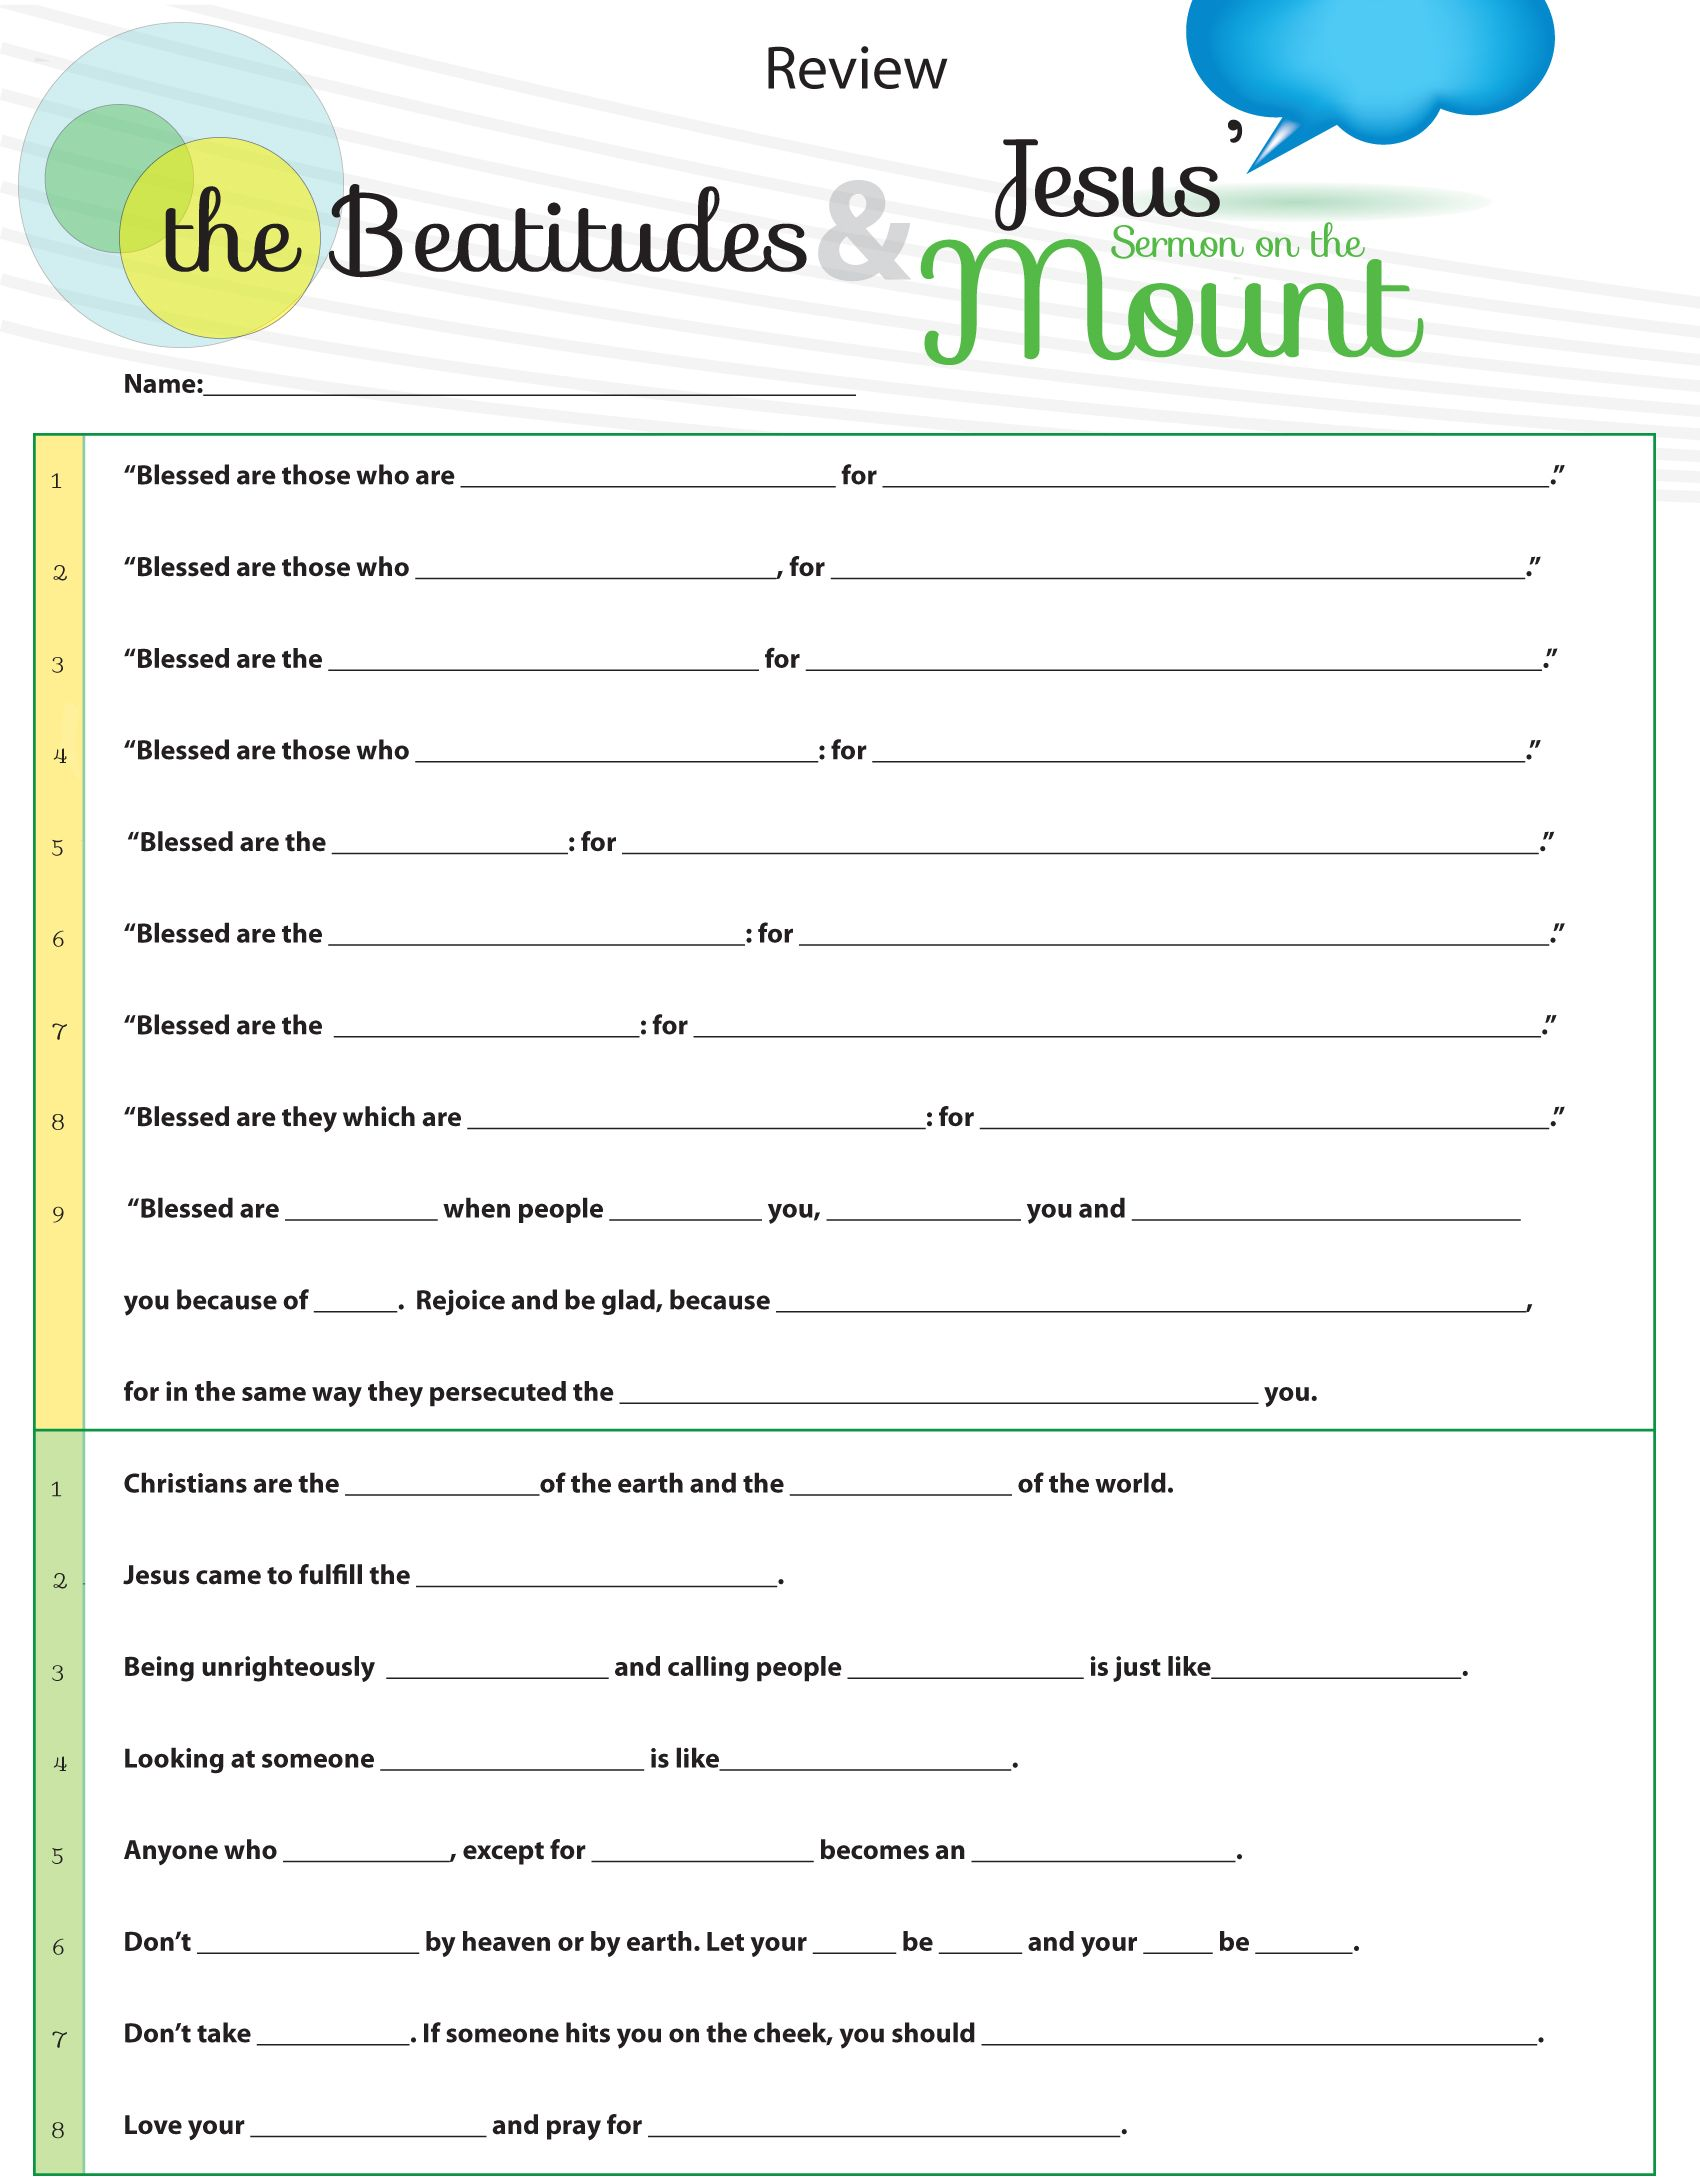 Worksheet To Teach Jesus Sermon On The Mount From Matthew Chapter 5 Overview With Fill In The